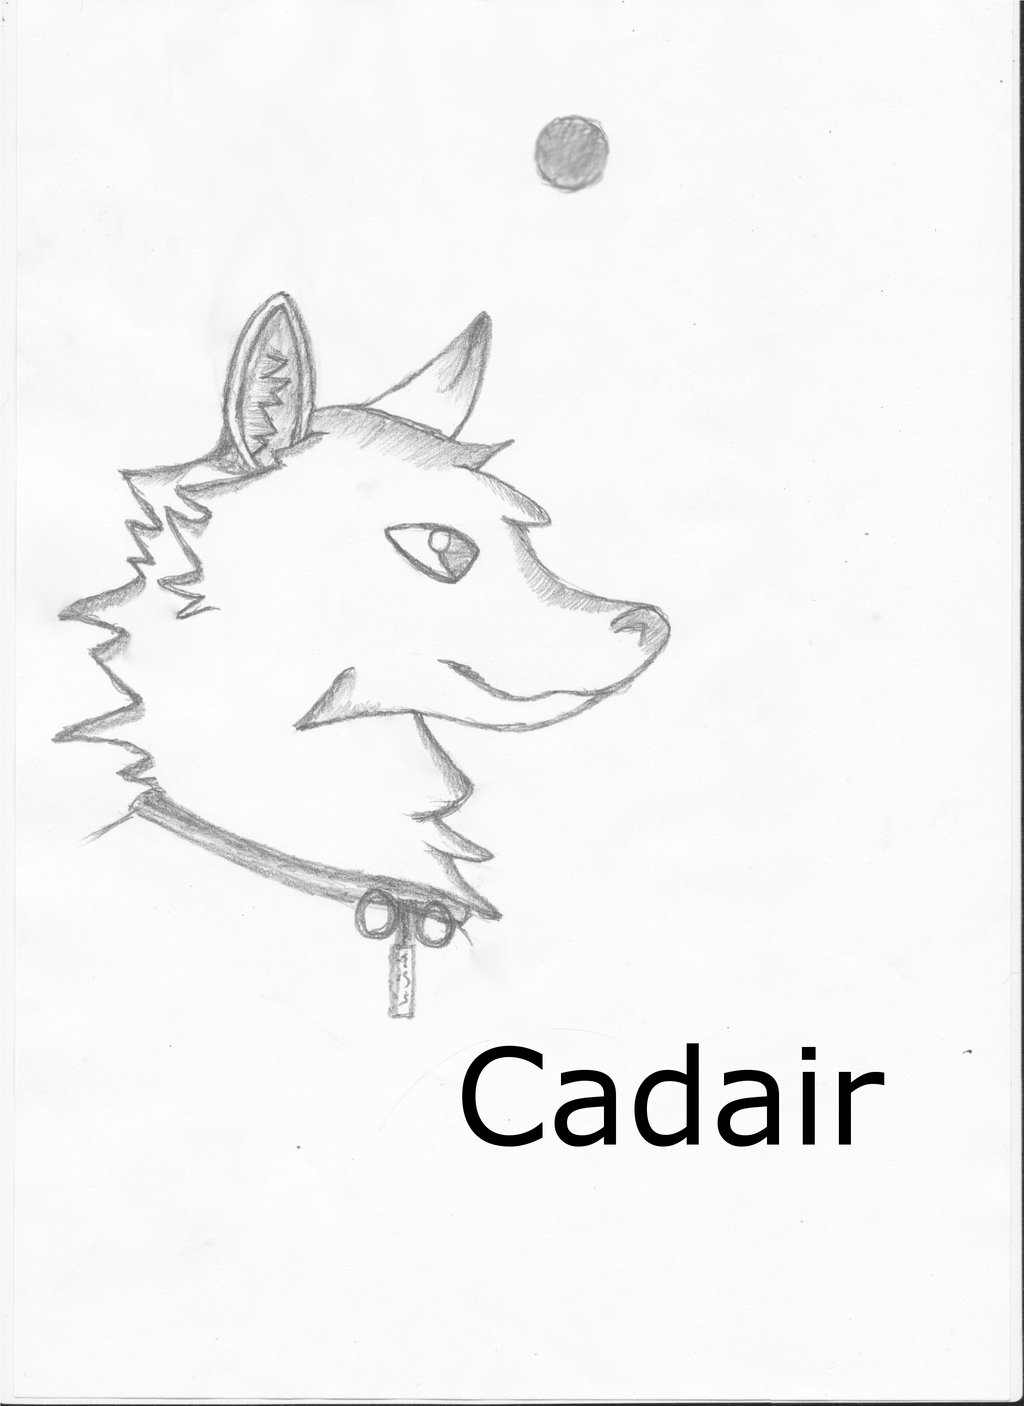 cadair's Profile Picture